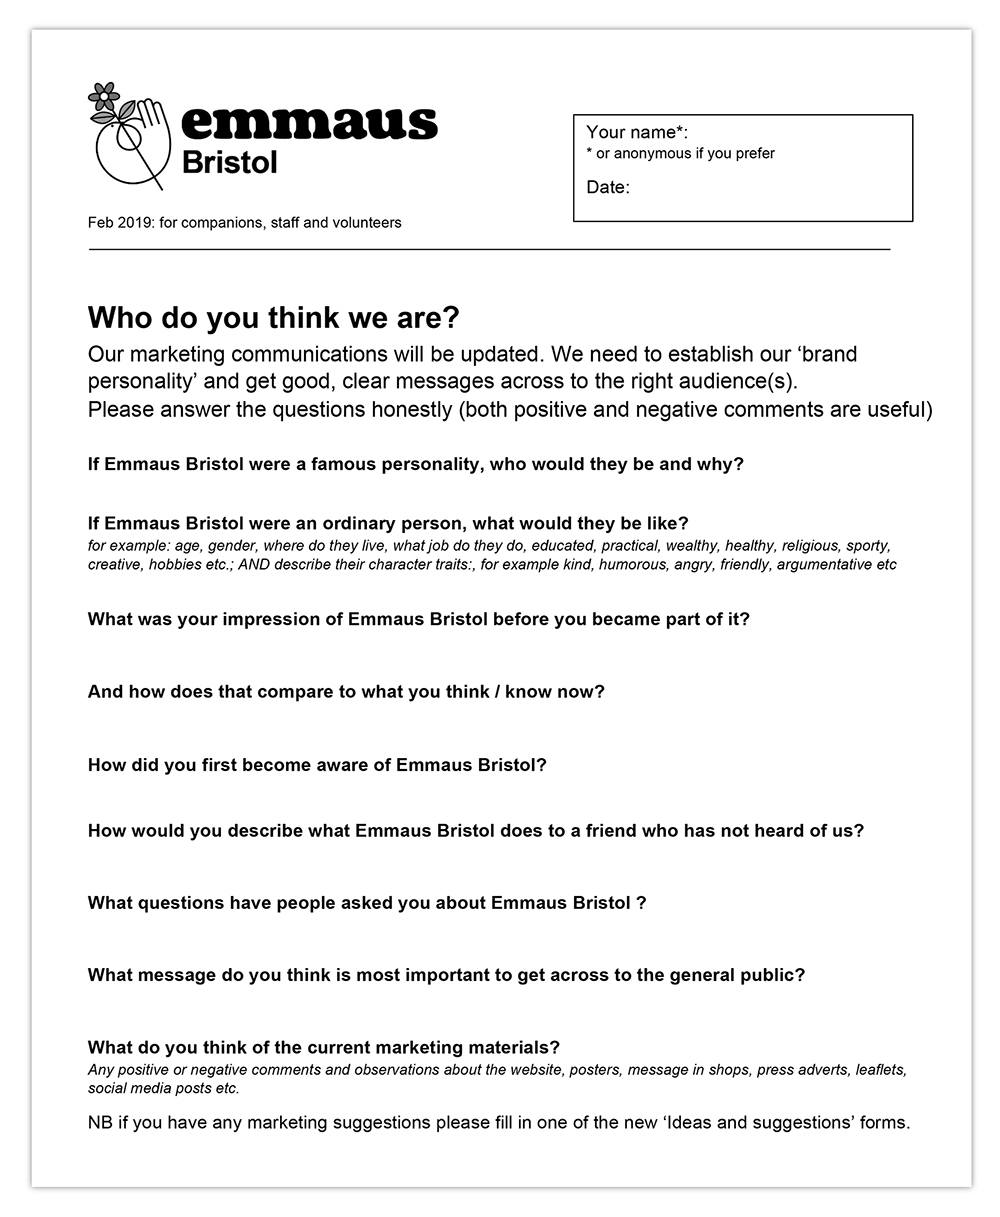 questionnaire informing brand and communications developments